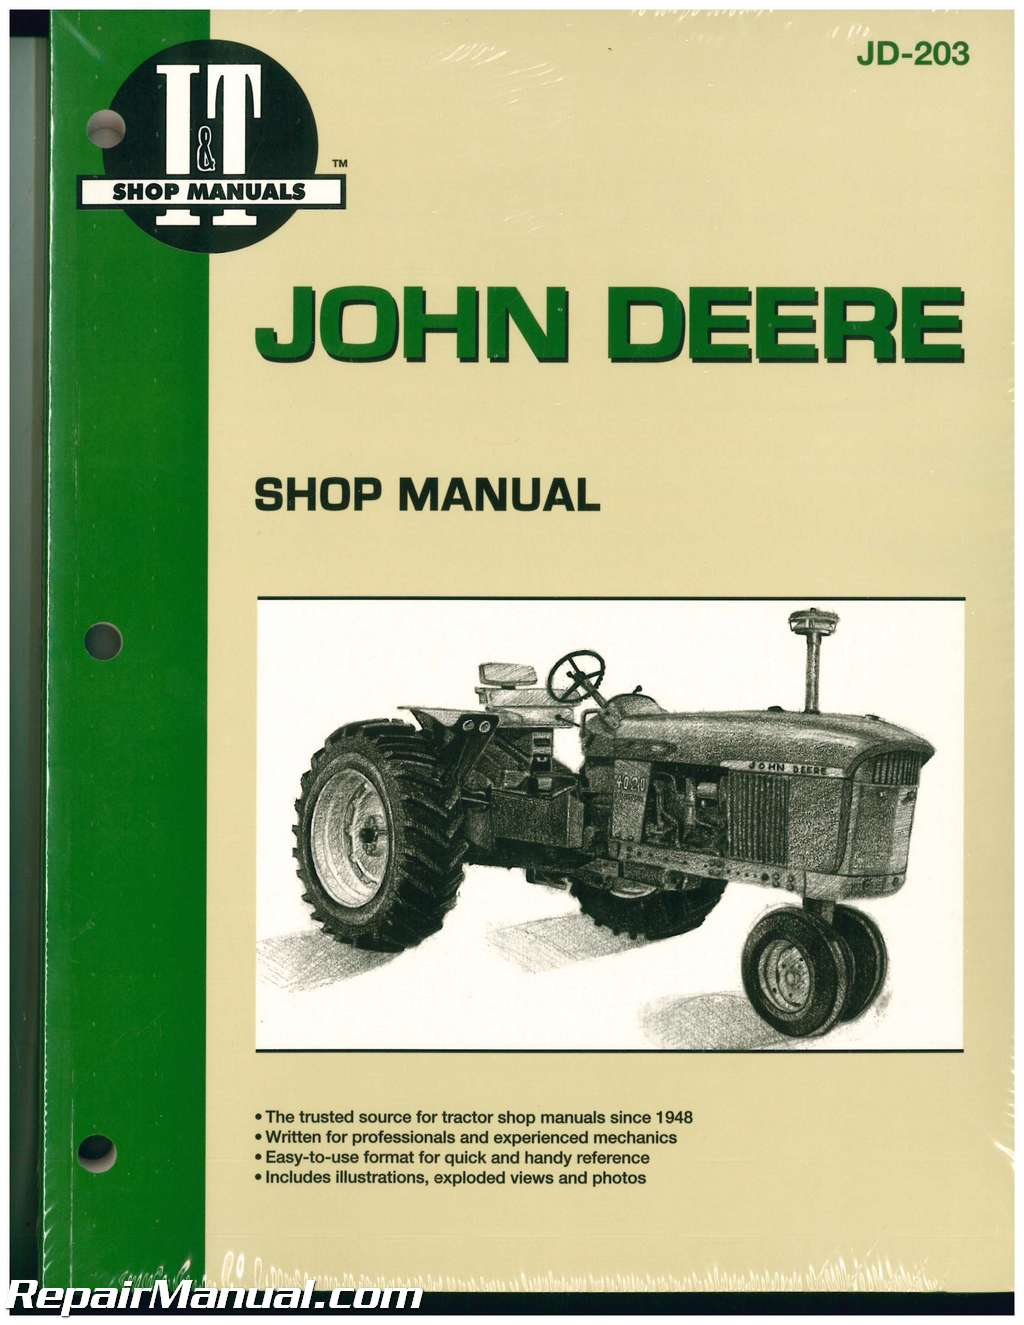 John Deere Tractor Manuals Free Best Deer Photos Jd 70 Wiring Diagram 3010 3020 4000 4010 4020 4320 4520 4620 5010 5020 And